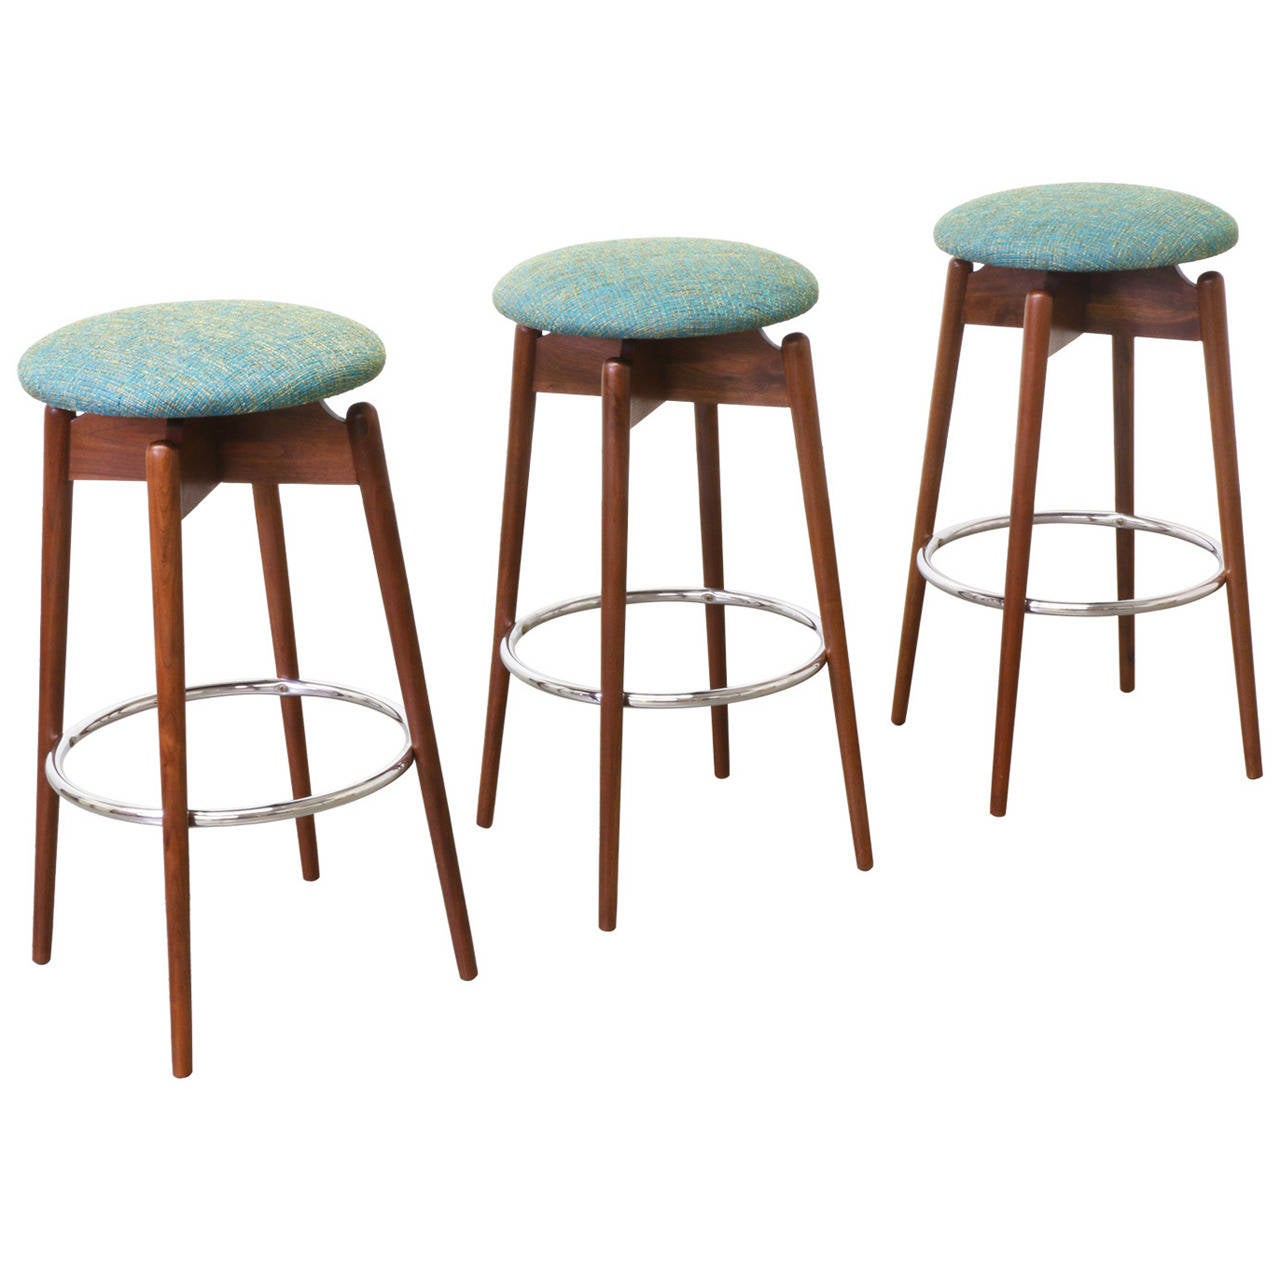 30 Backless Bar Stools New Set Of 2 Chrome Plated Metal